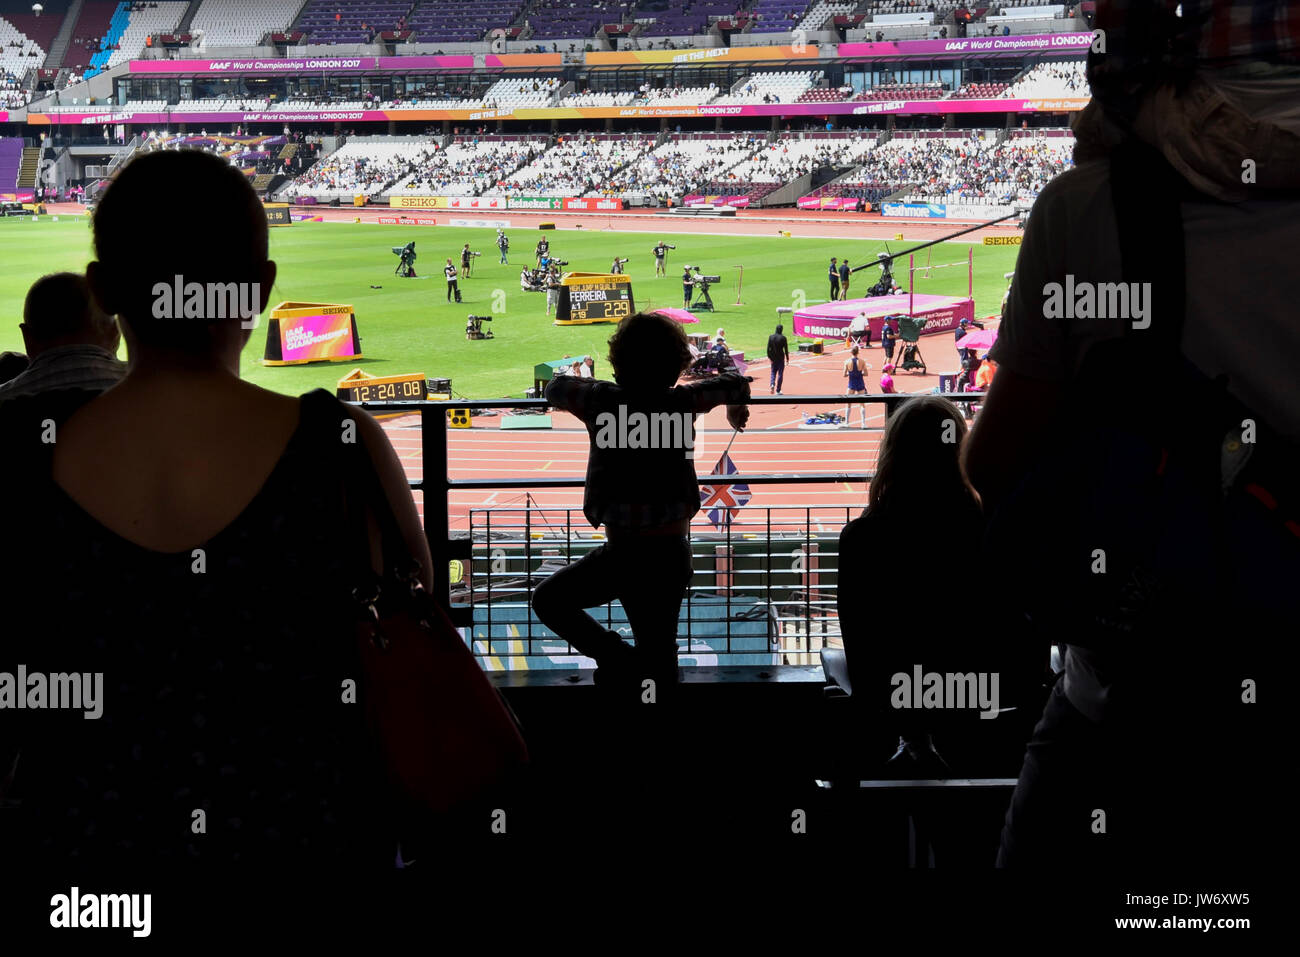 London, UK.  11 August 2017. A young fan is seen in silhouette watching the high jump qualification at the London - Stock Image